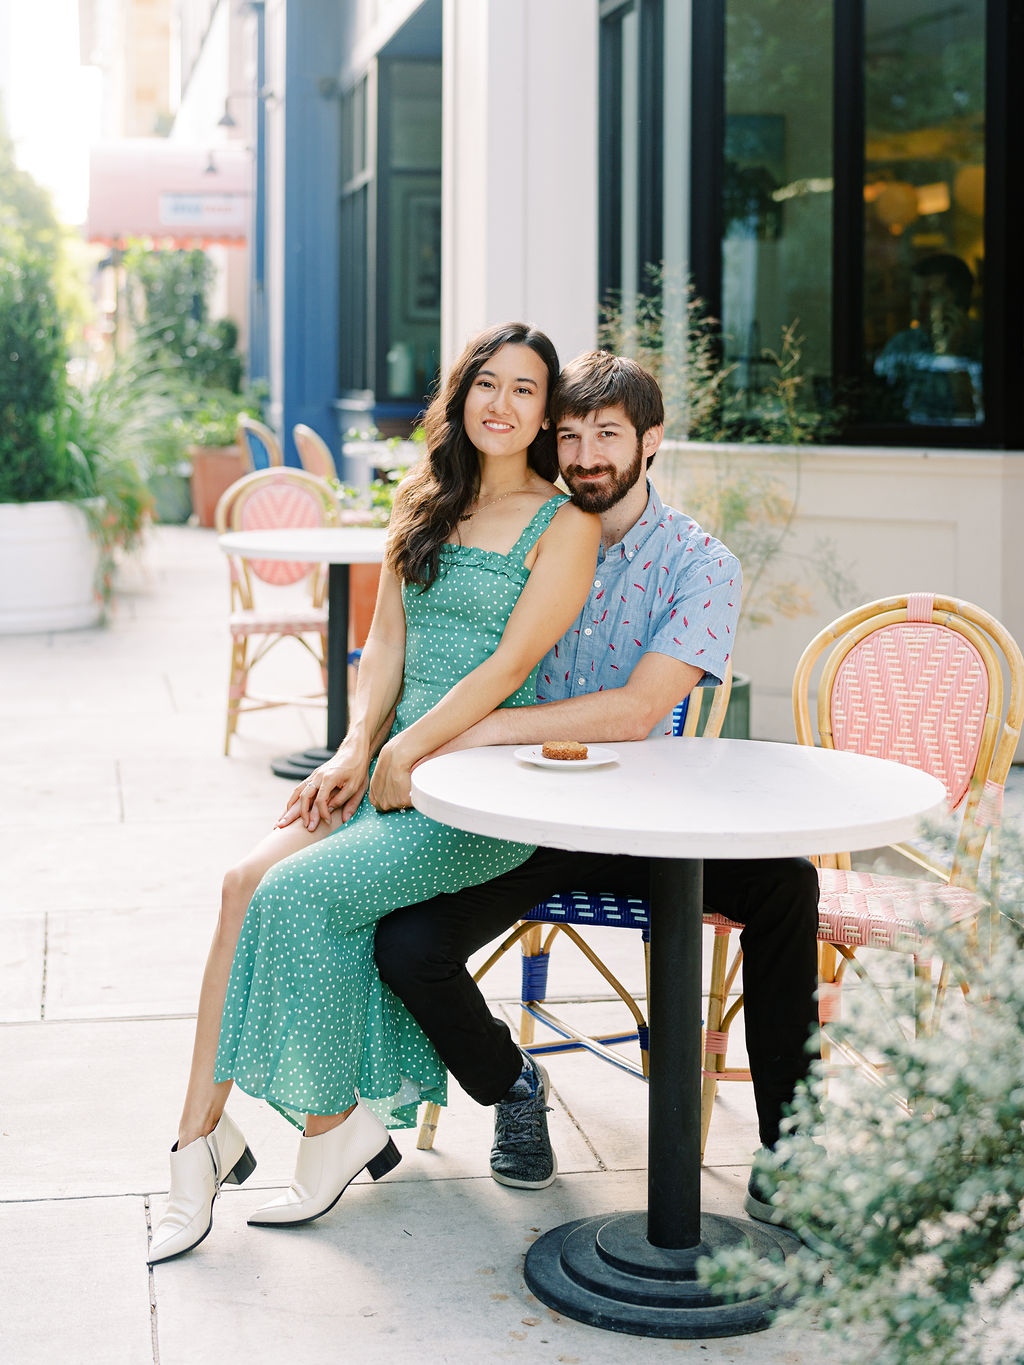 Austin-Intimate-Wedding-Elopement-Photograper-Film-Downtown-Engagement-Session-Home-31.jpg